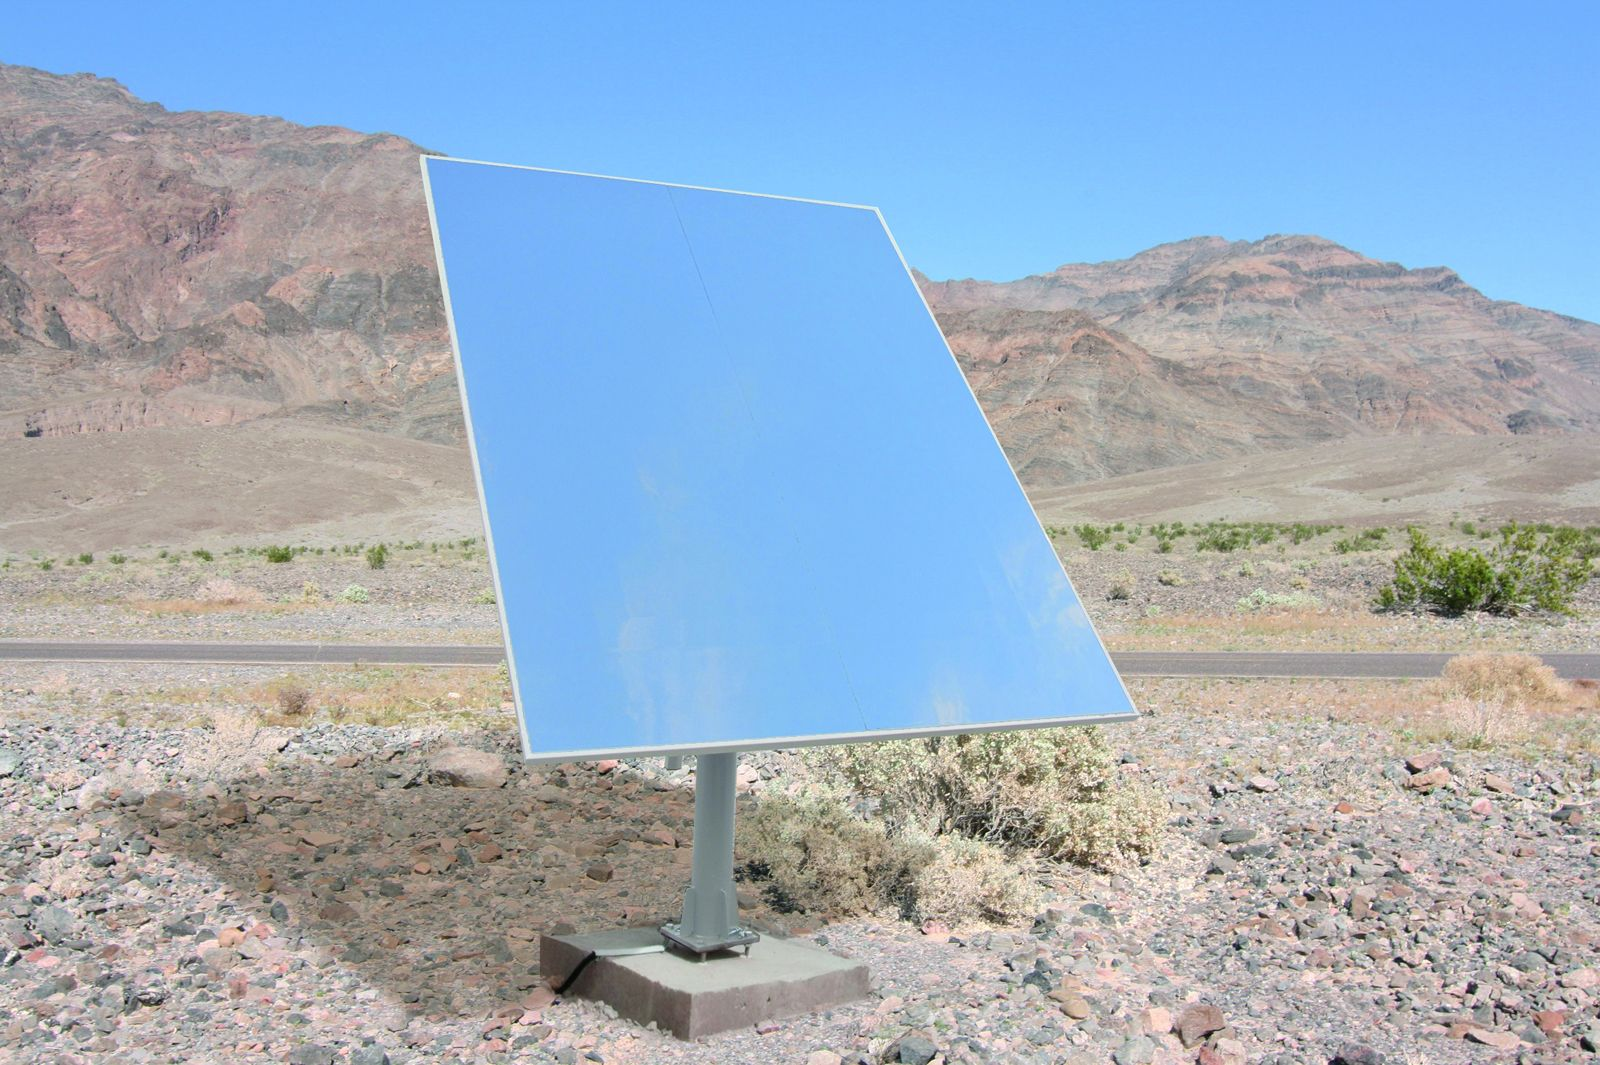 Efficient Solar Power Through Industry Oriented Research